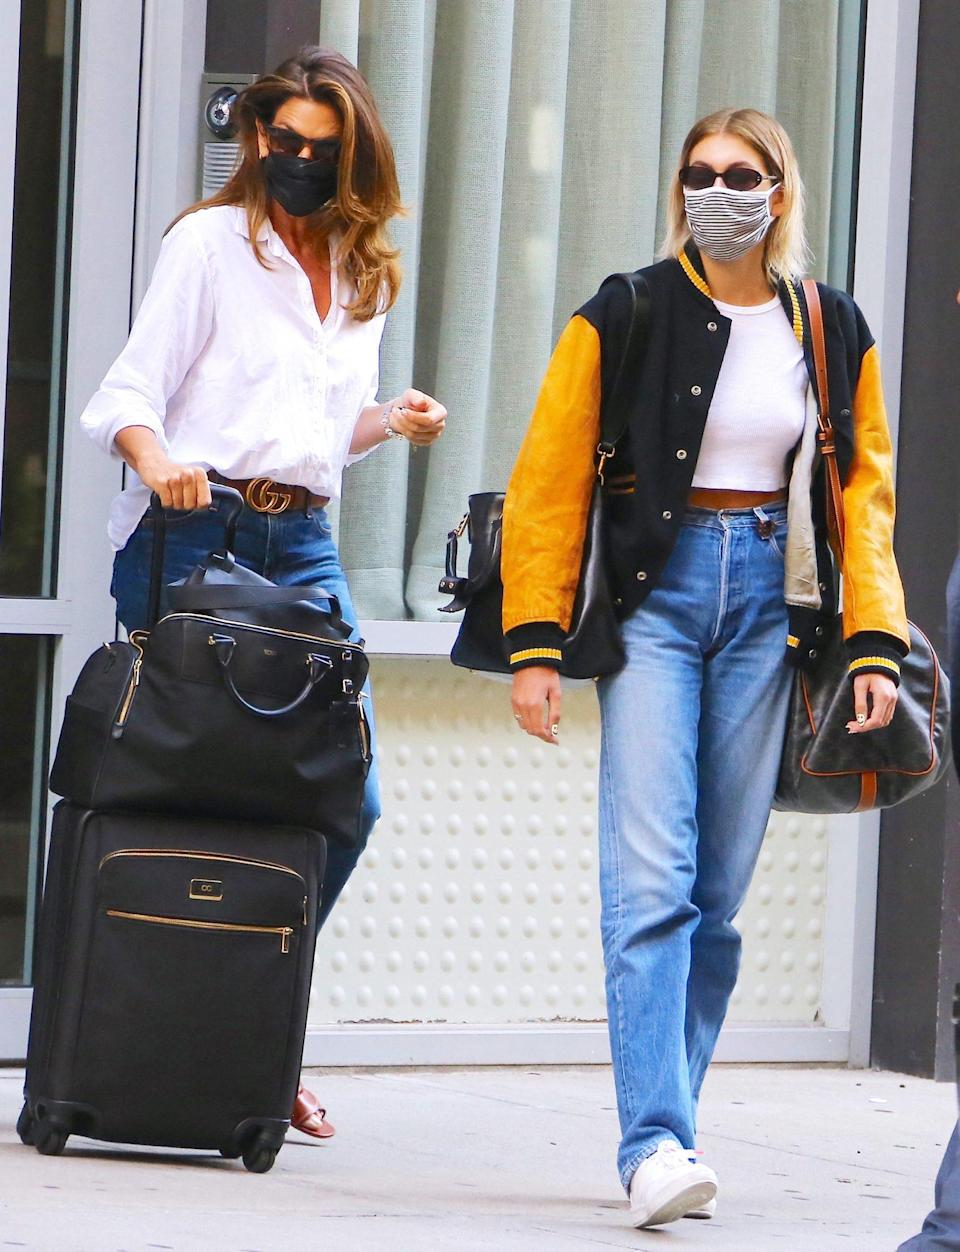 <p>Cindy Crawford and daughter Kaia Gerber are seen leaving their apartment in New York City together on Tuesday. </p>